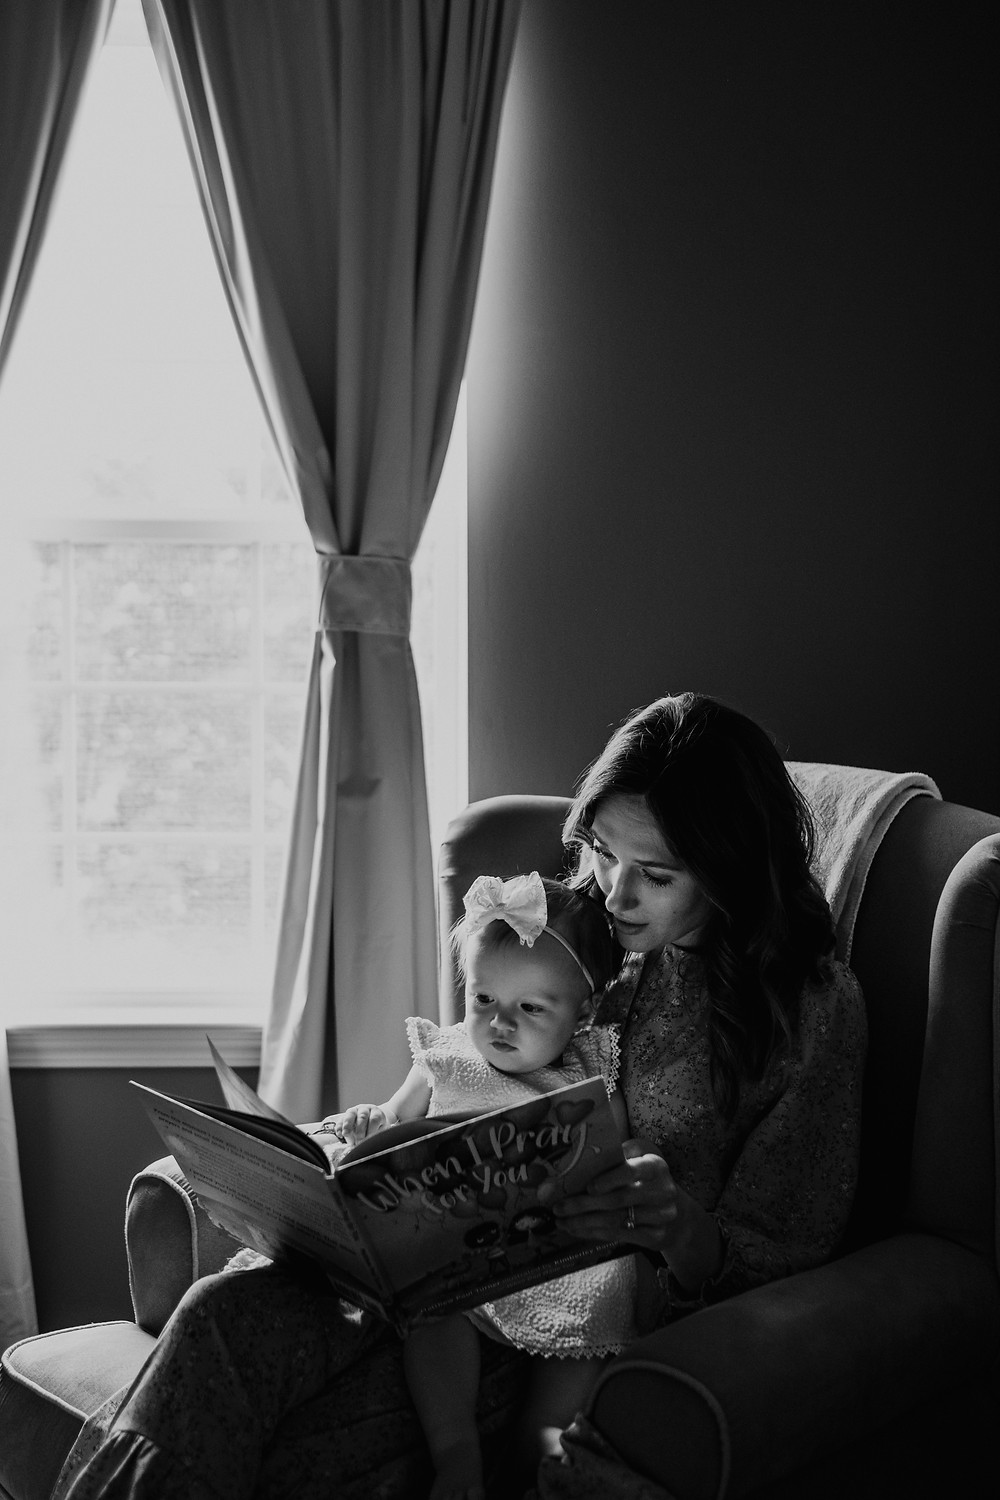 Mother reading book to child on lap. Photographed by Nicole Leanne Photography.